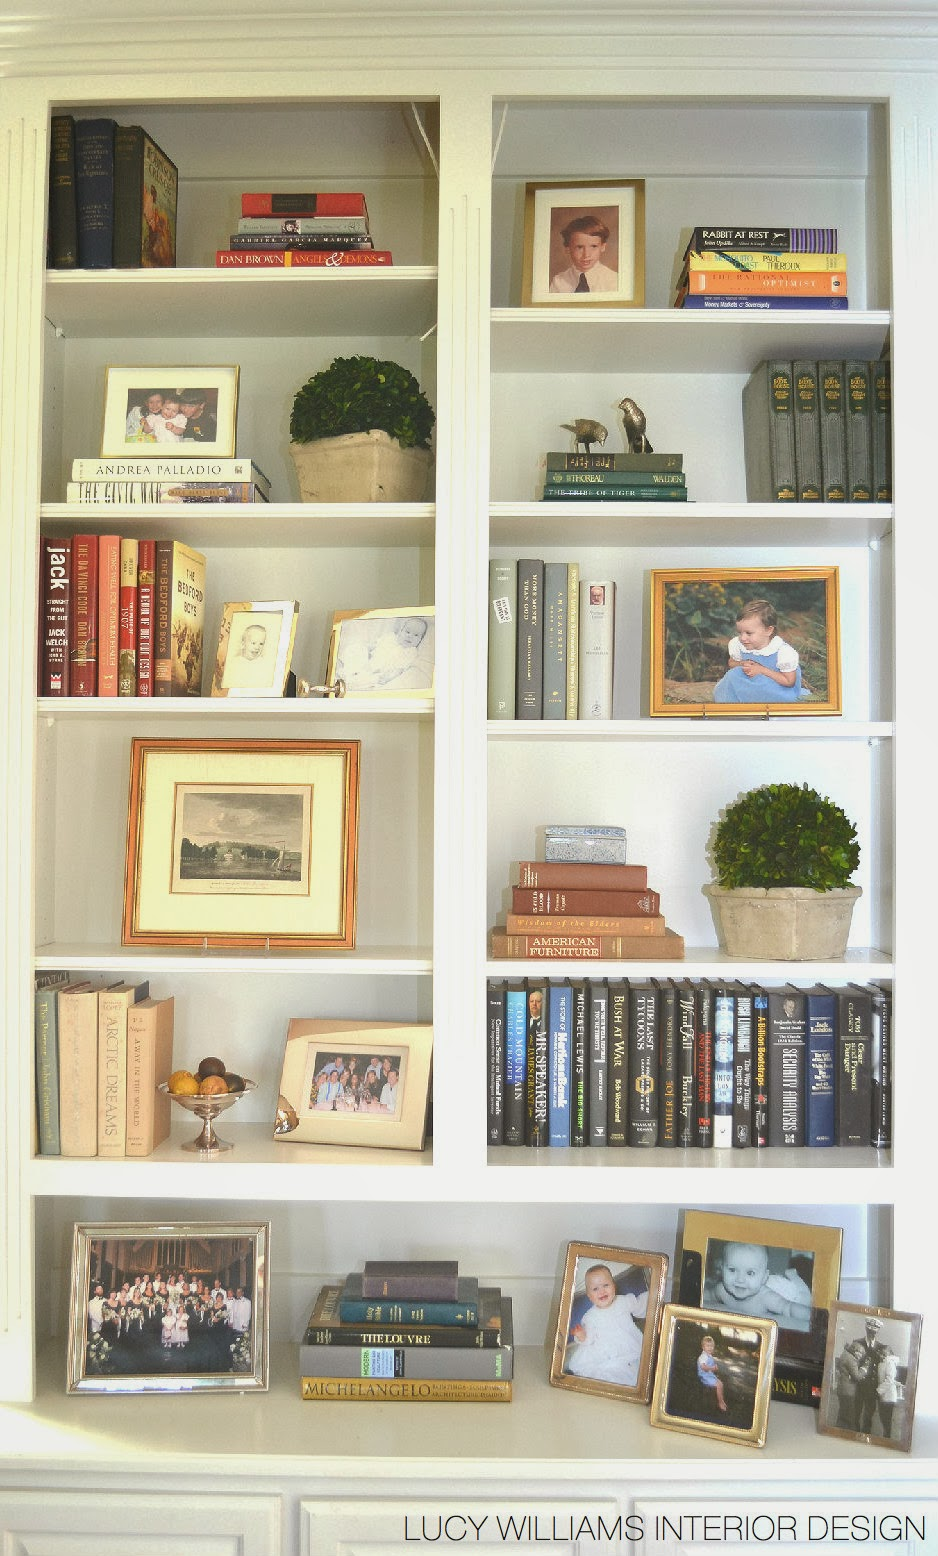 WILLIAMS INTERIOR DESIGN BLOG: BEFORE AND AFTER: LIVING ROOM BOOKCASE